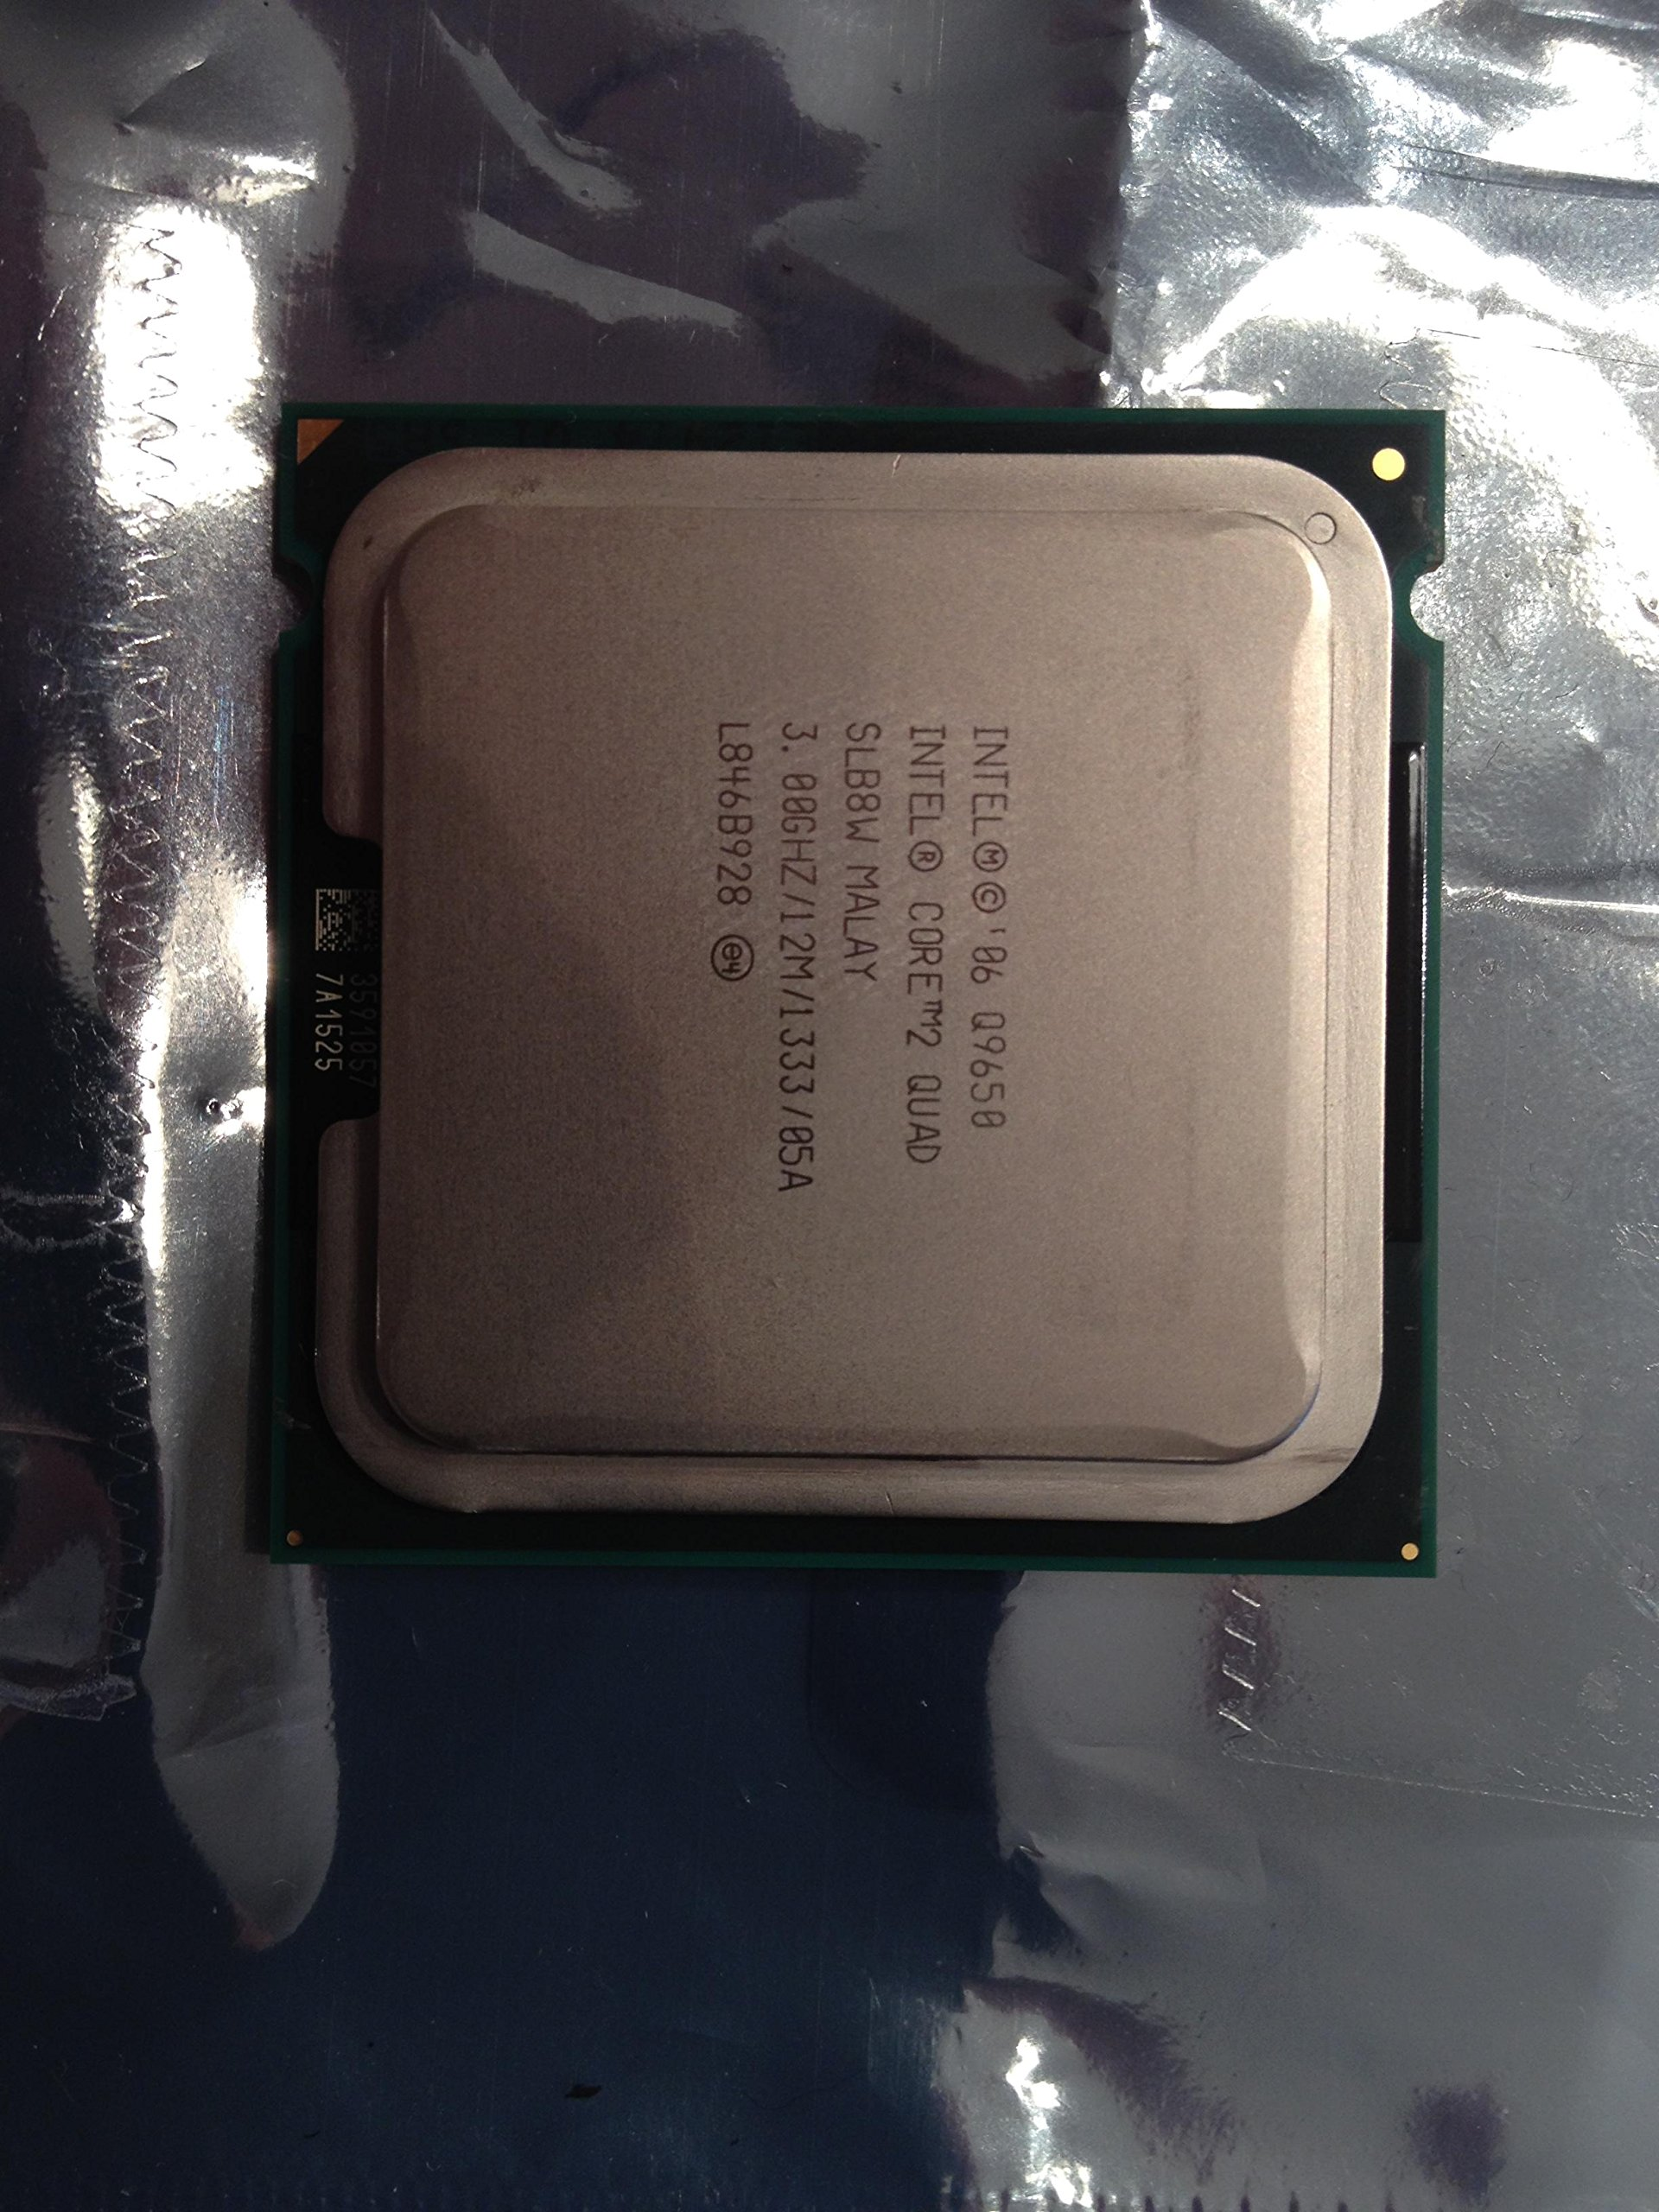 Intel Core 2 Quad Q9650 3 GHz 12 MB Cache Quad-Core CPU Processor SLB8W LGA 775